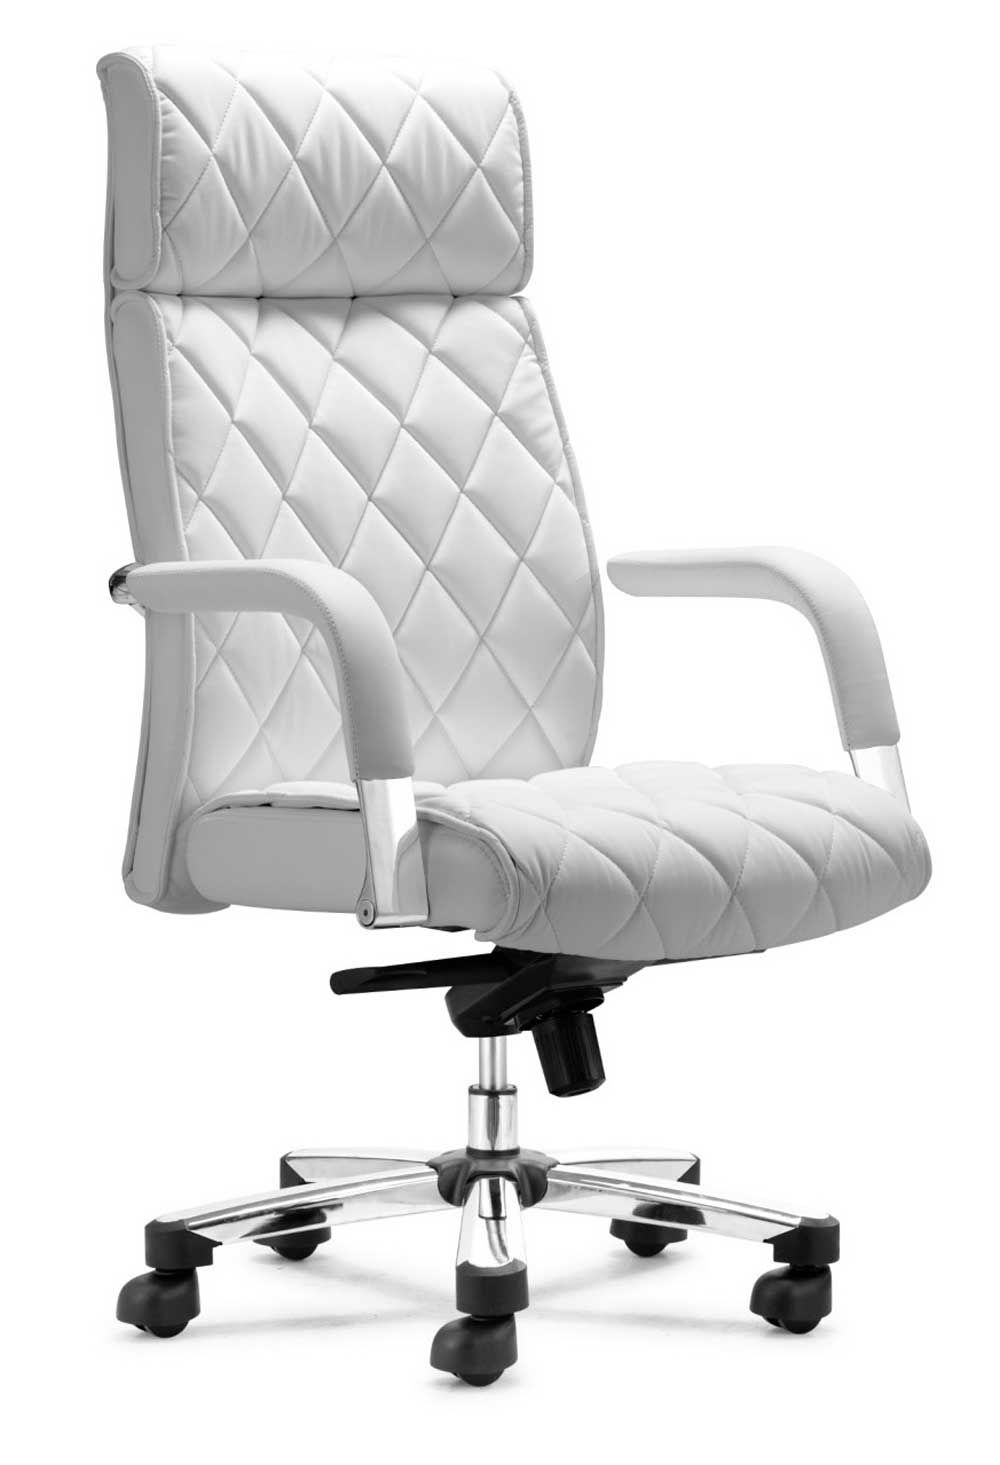 Zuo Modern White Regal High Back Leather Office Chair White